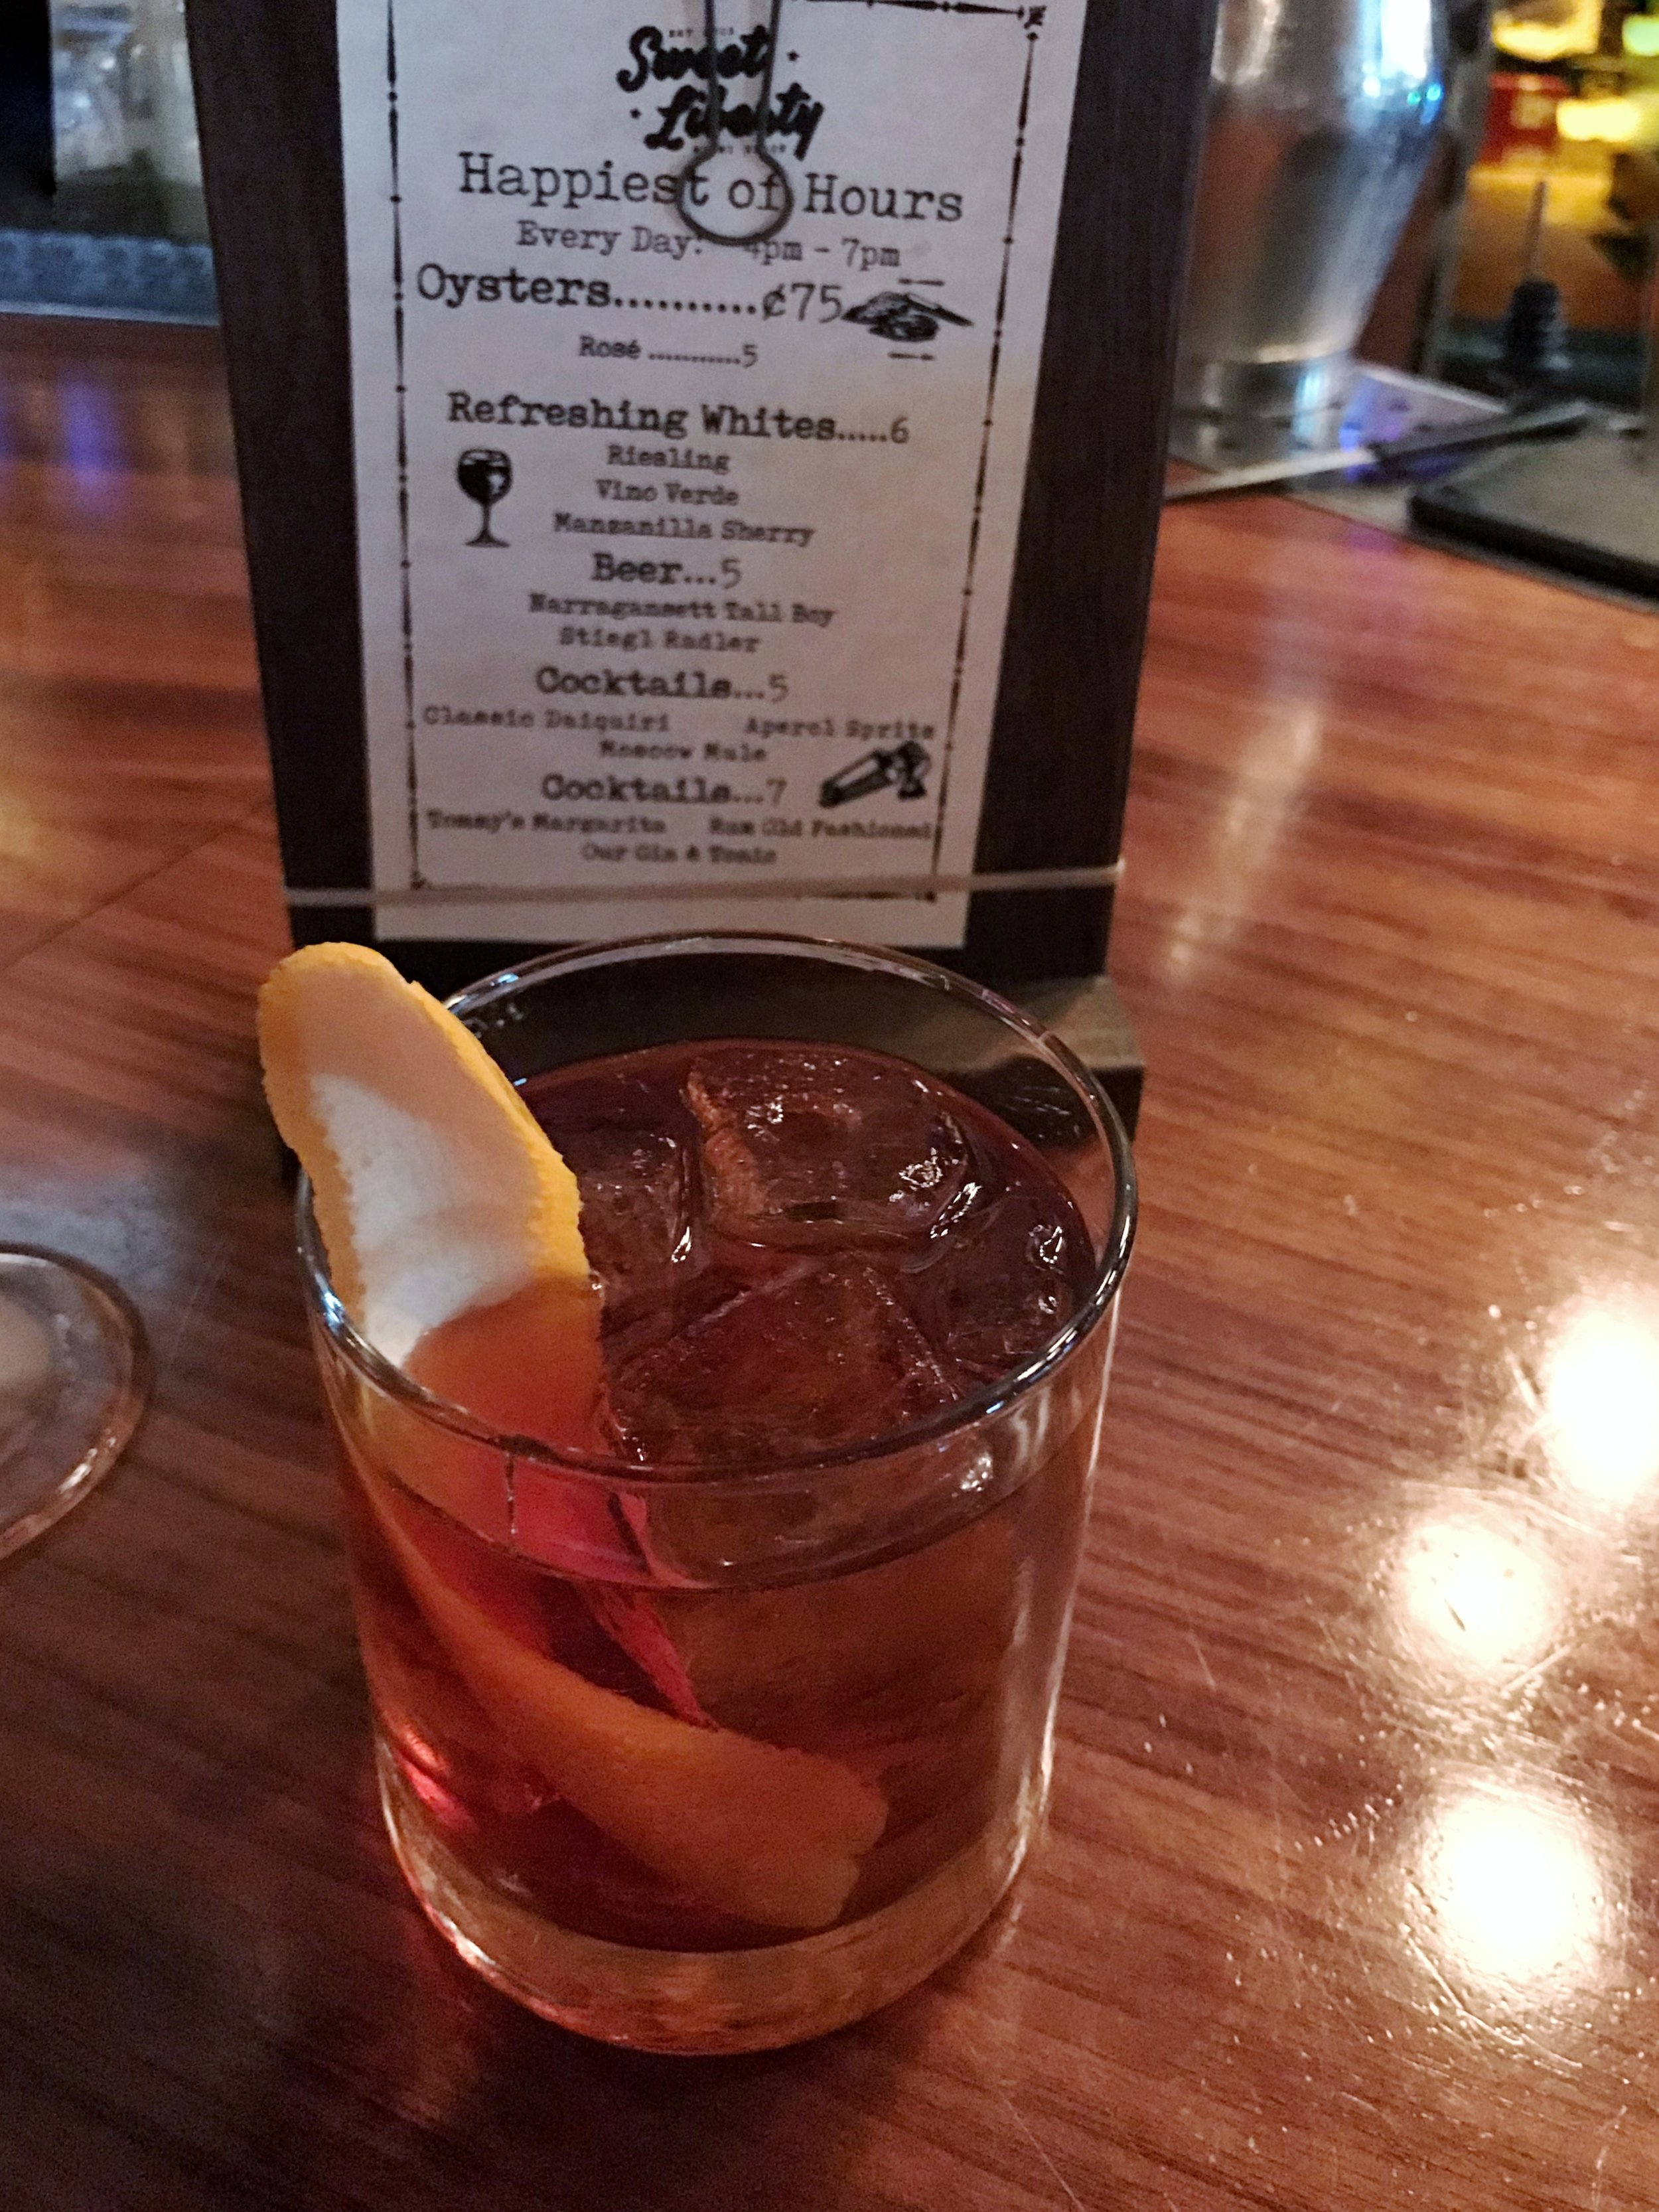 sweet liberty's rum old fashioned